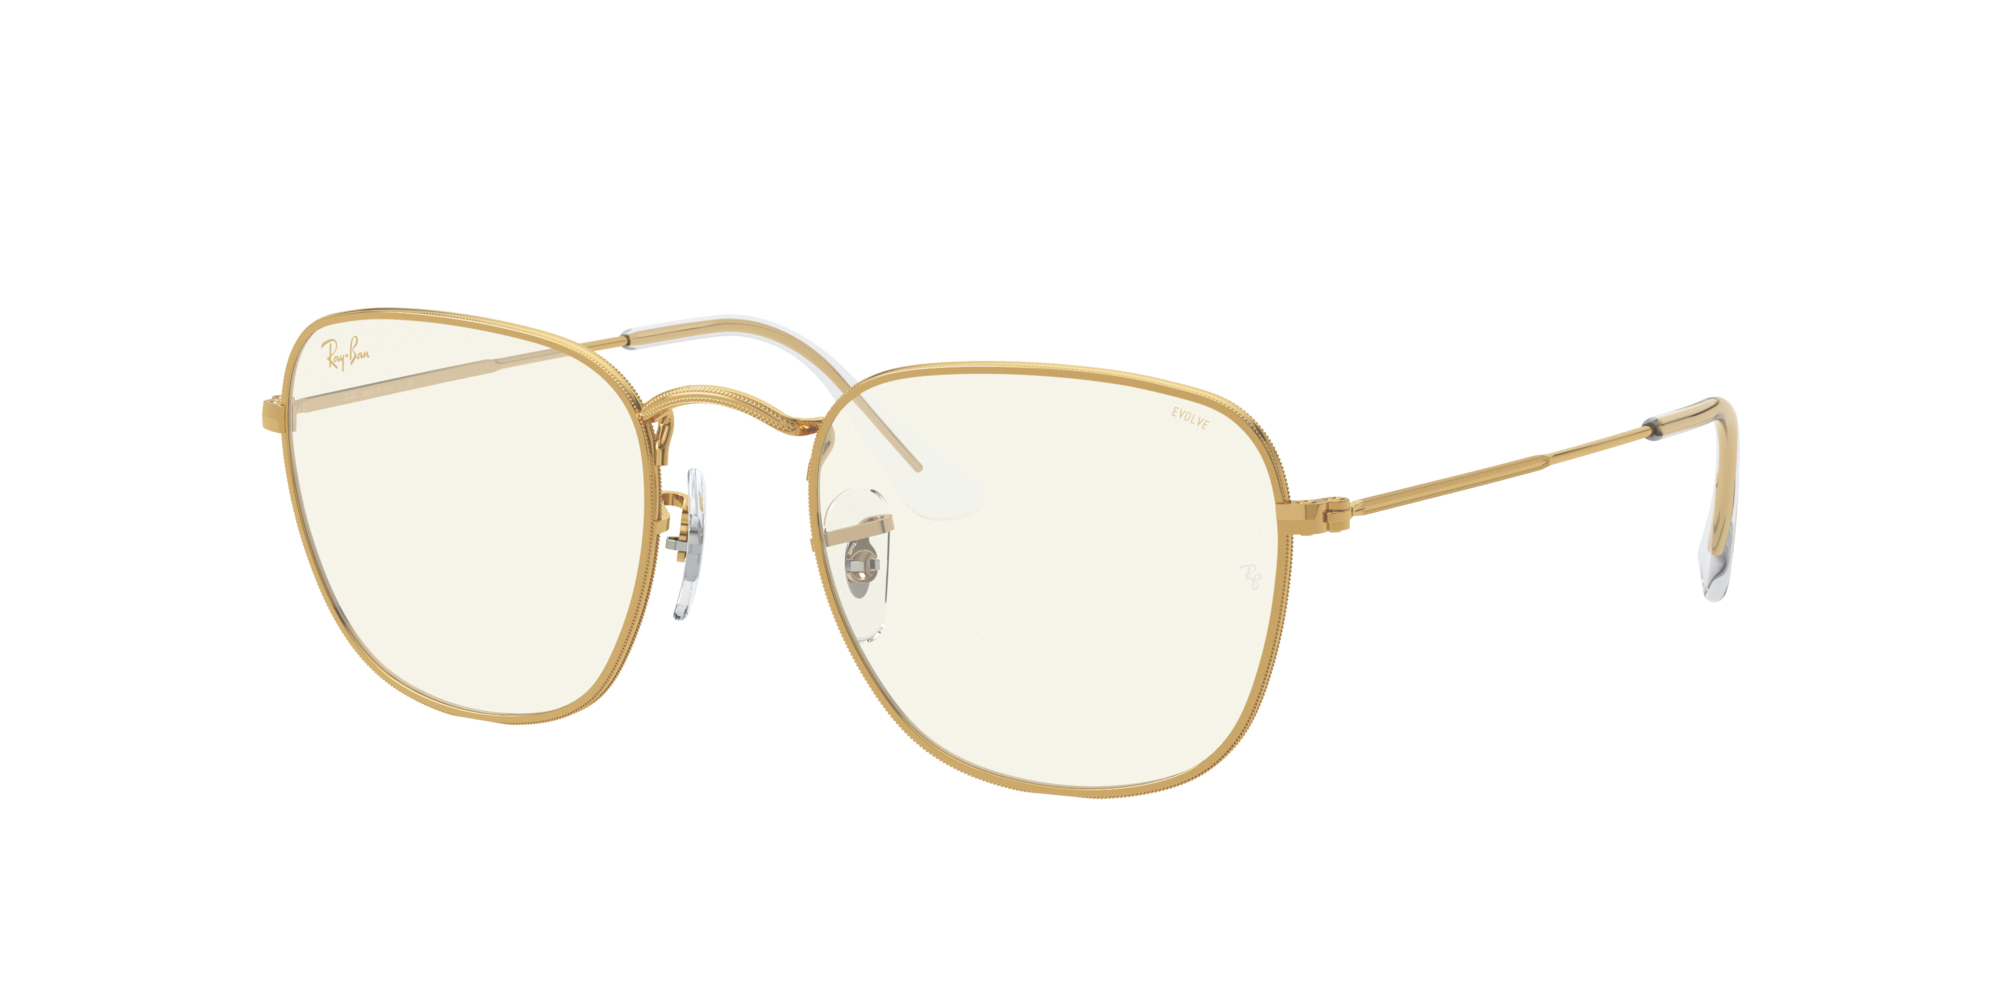 Ray Ban RAY BAN UNISEX  RB3857 FRANK CLEAR EVOLVE WITH BLUE